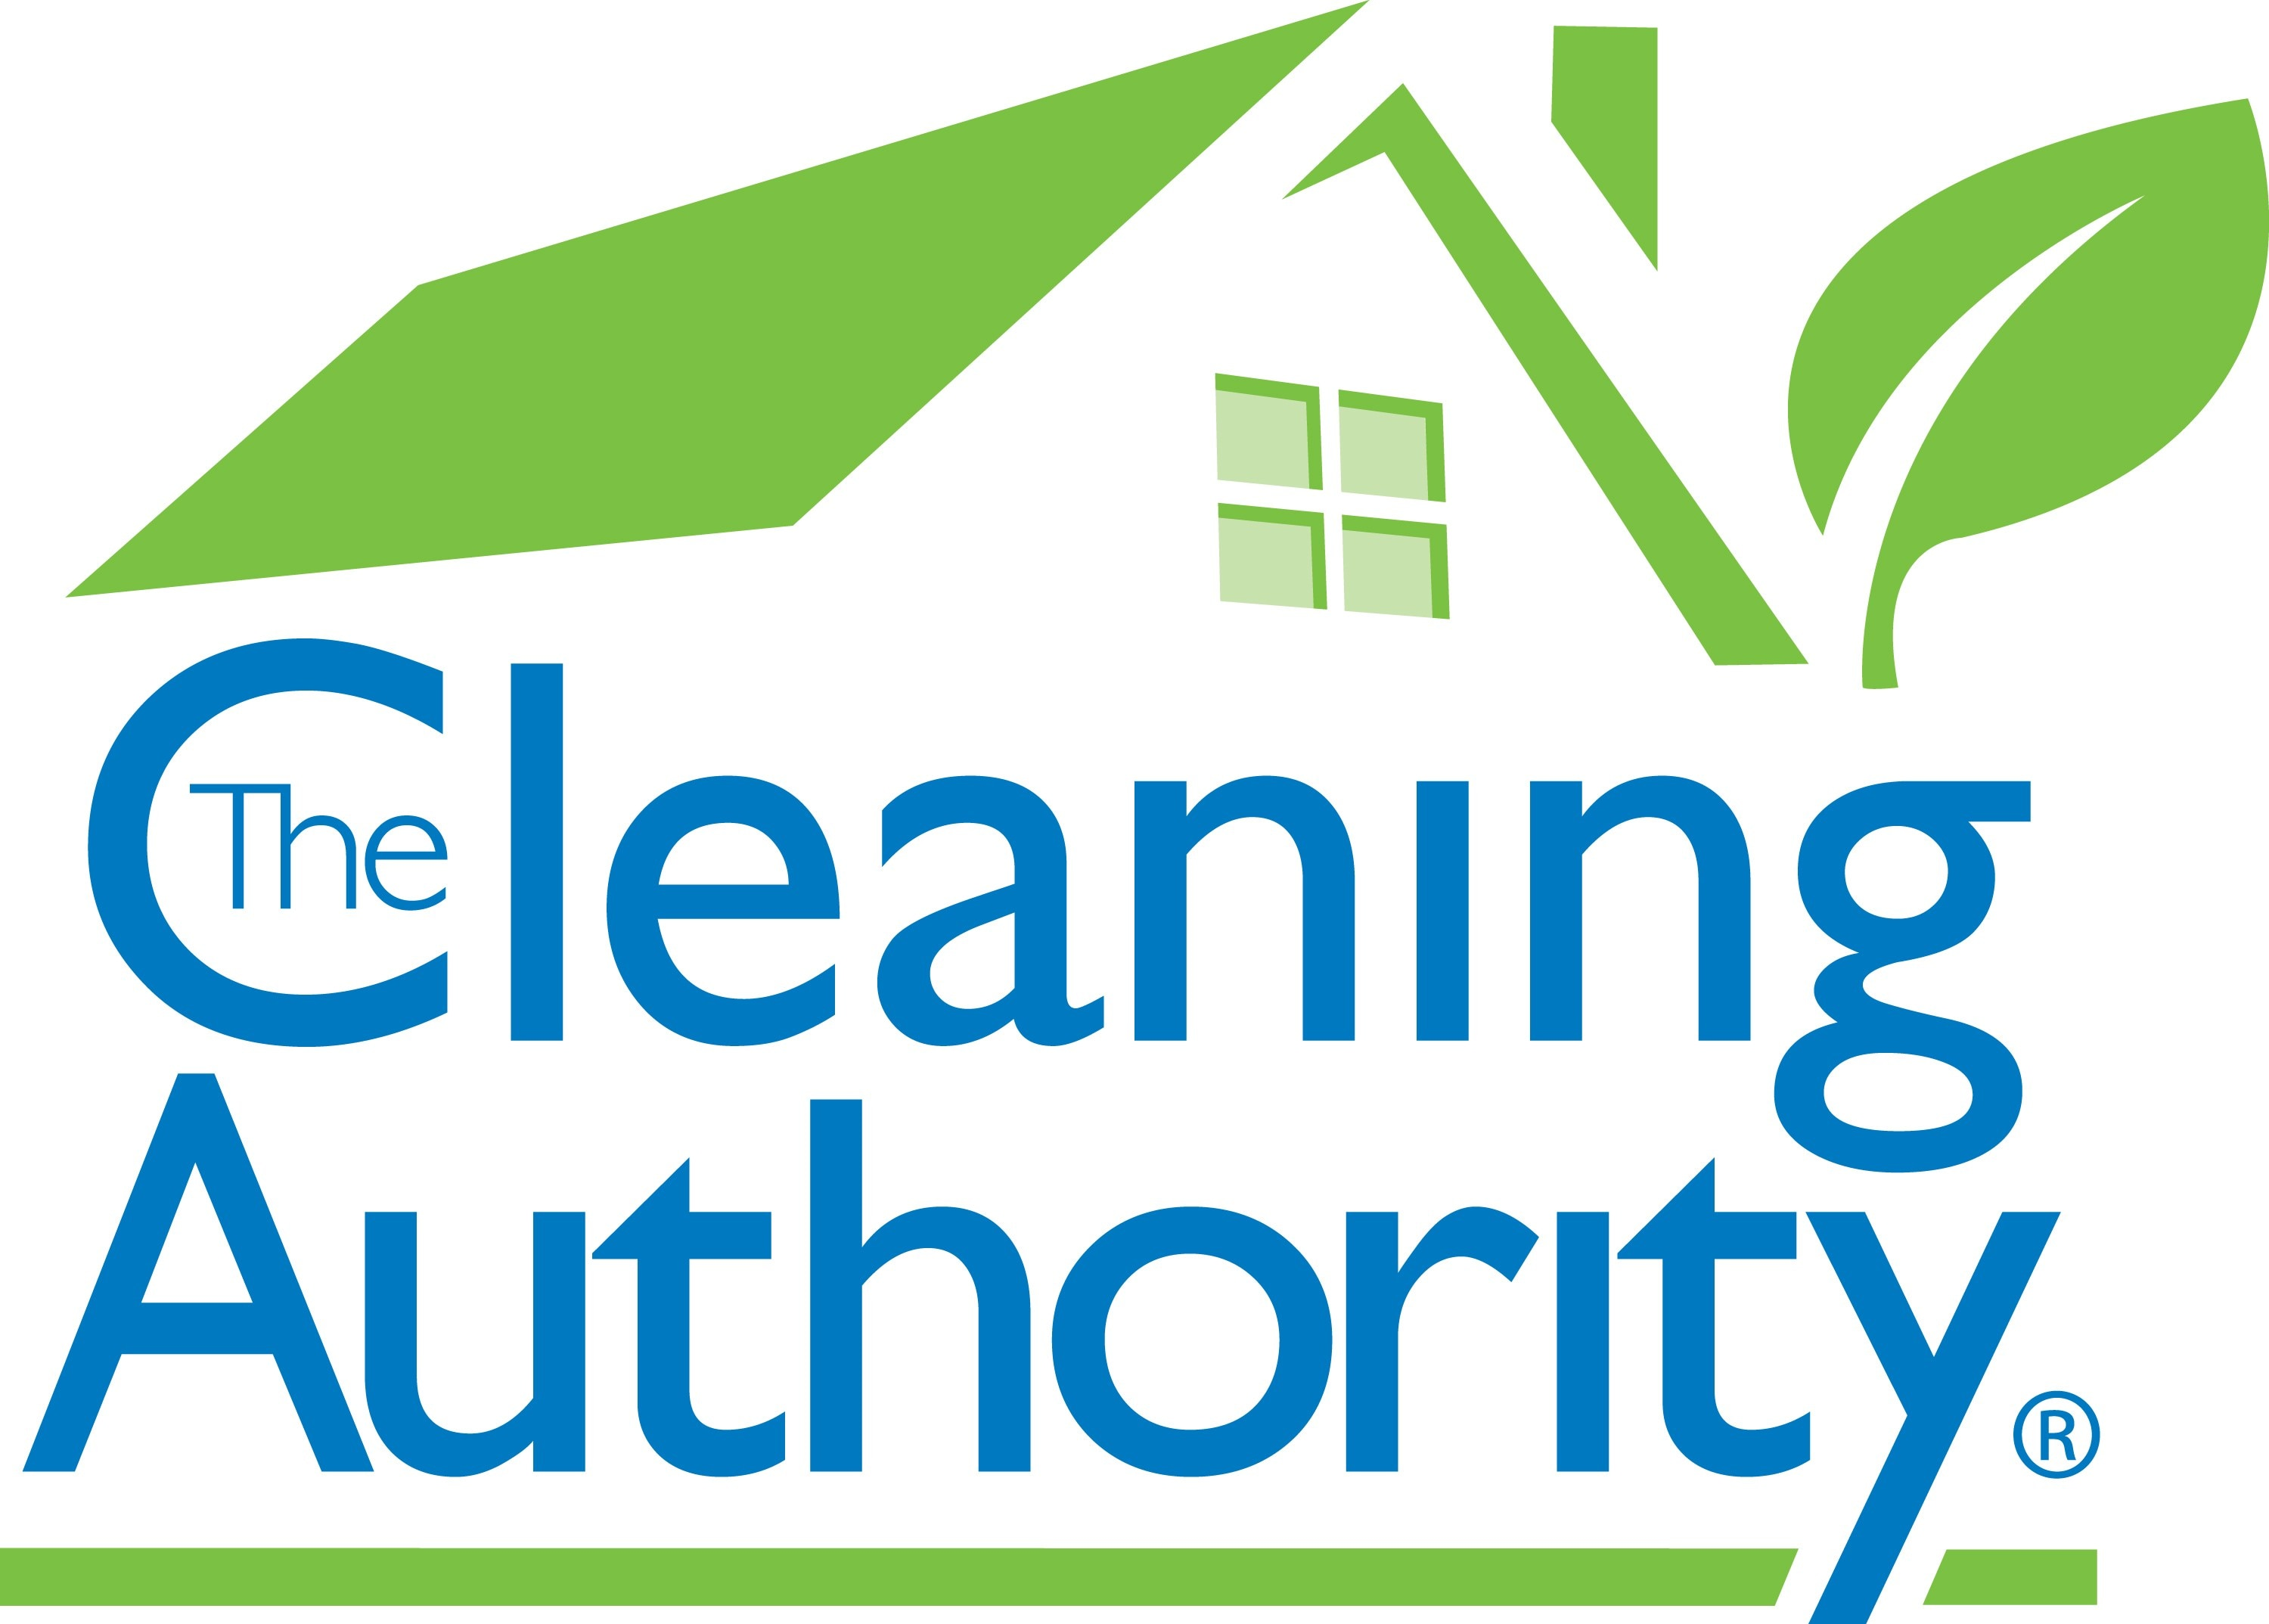 The Cleaning Authority - Ann Arbor logo